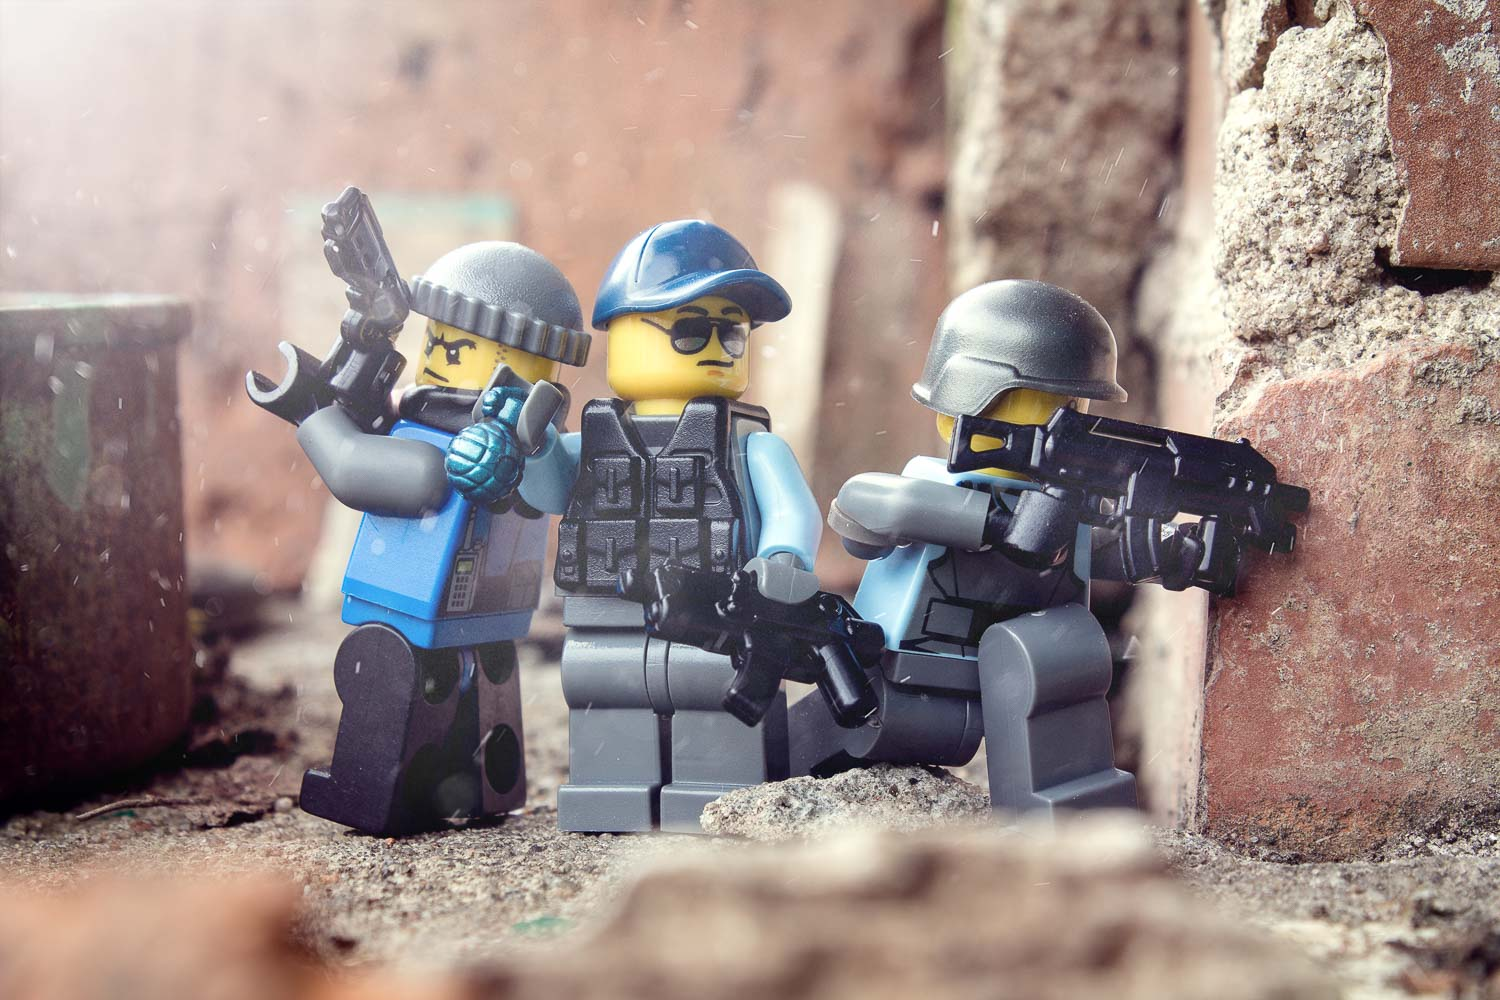 20160519_urban-warfare-gi-brick.jpg